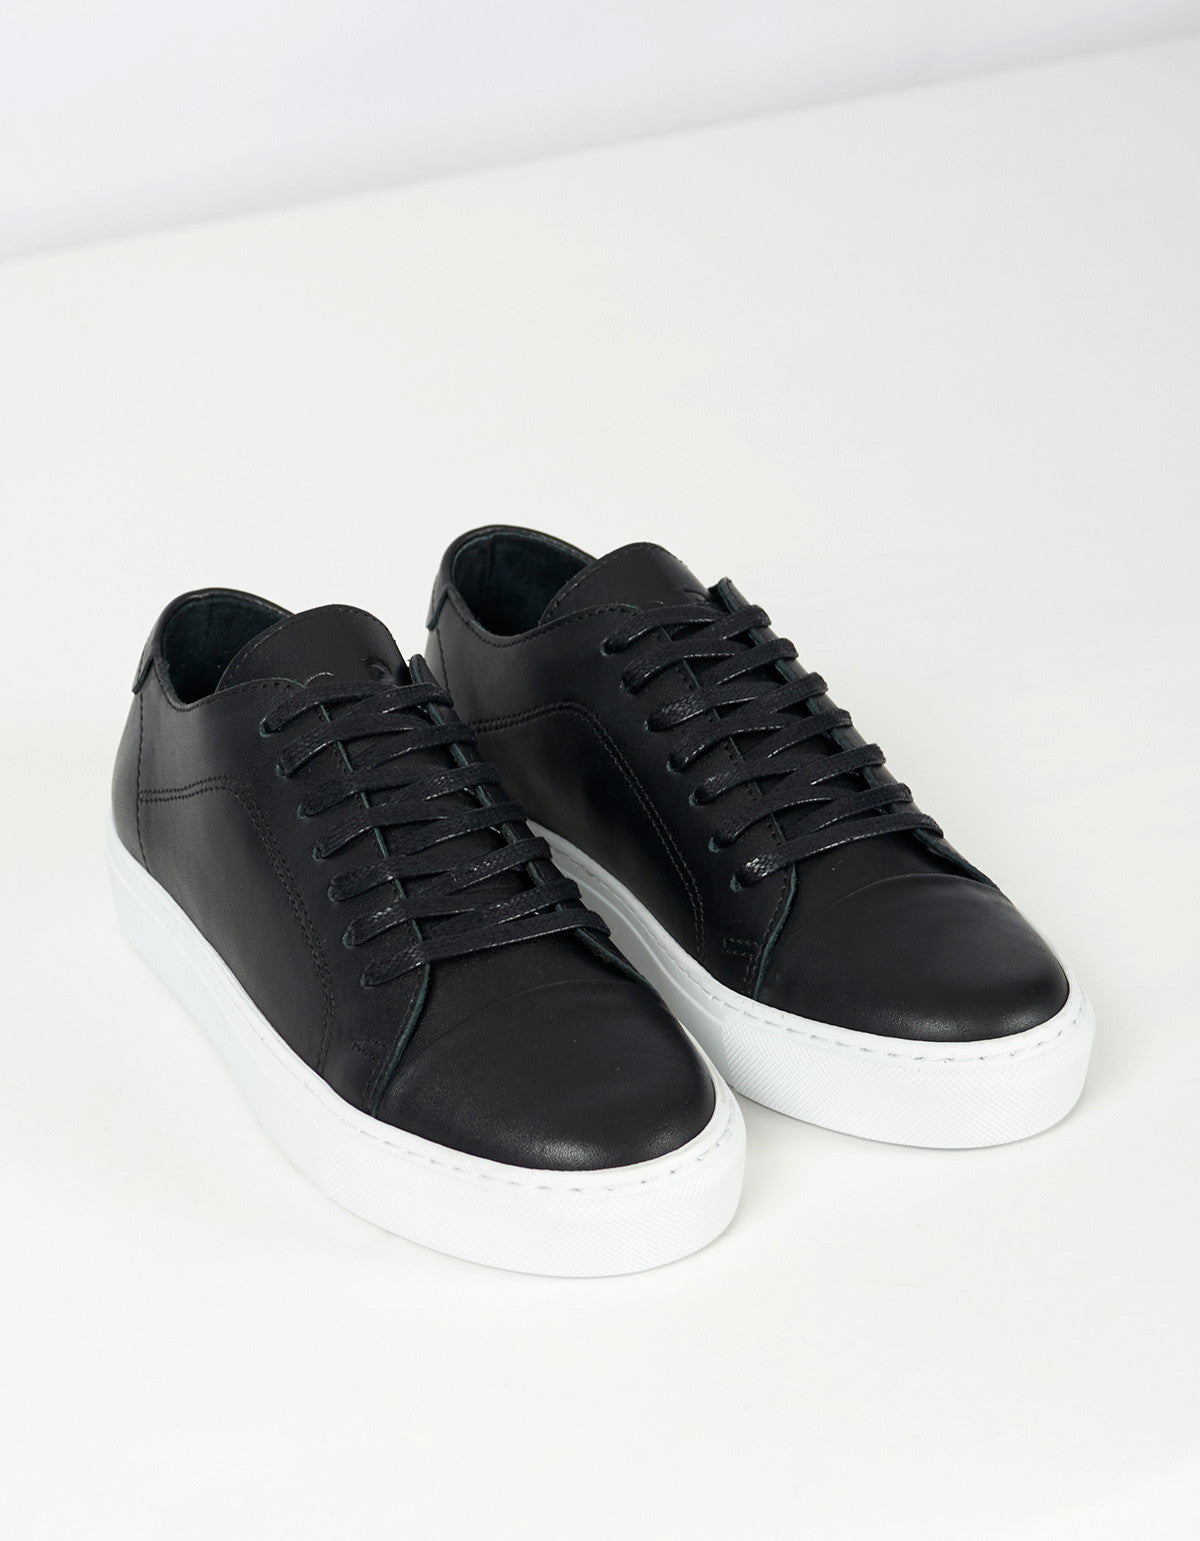 Garment Project Classic Lace Sneaker Black - Still Life - 3